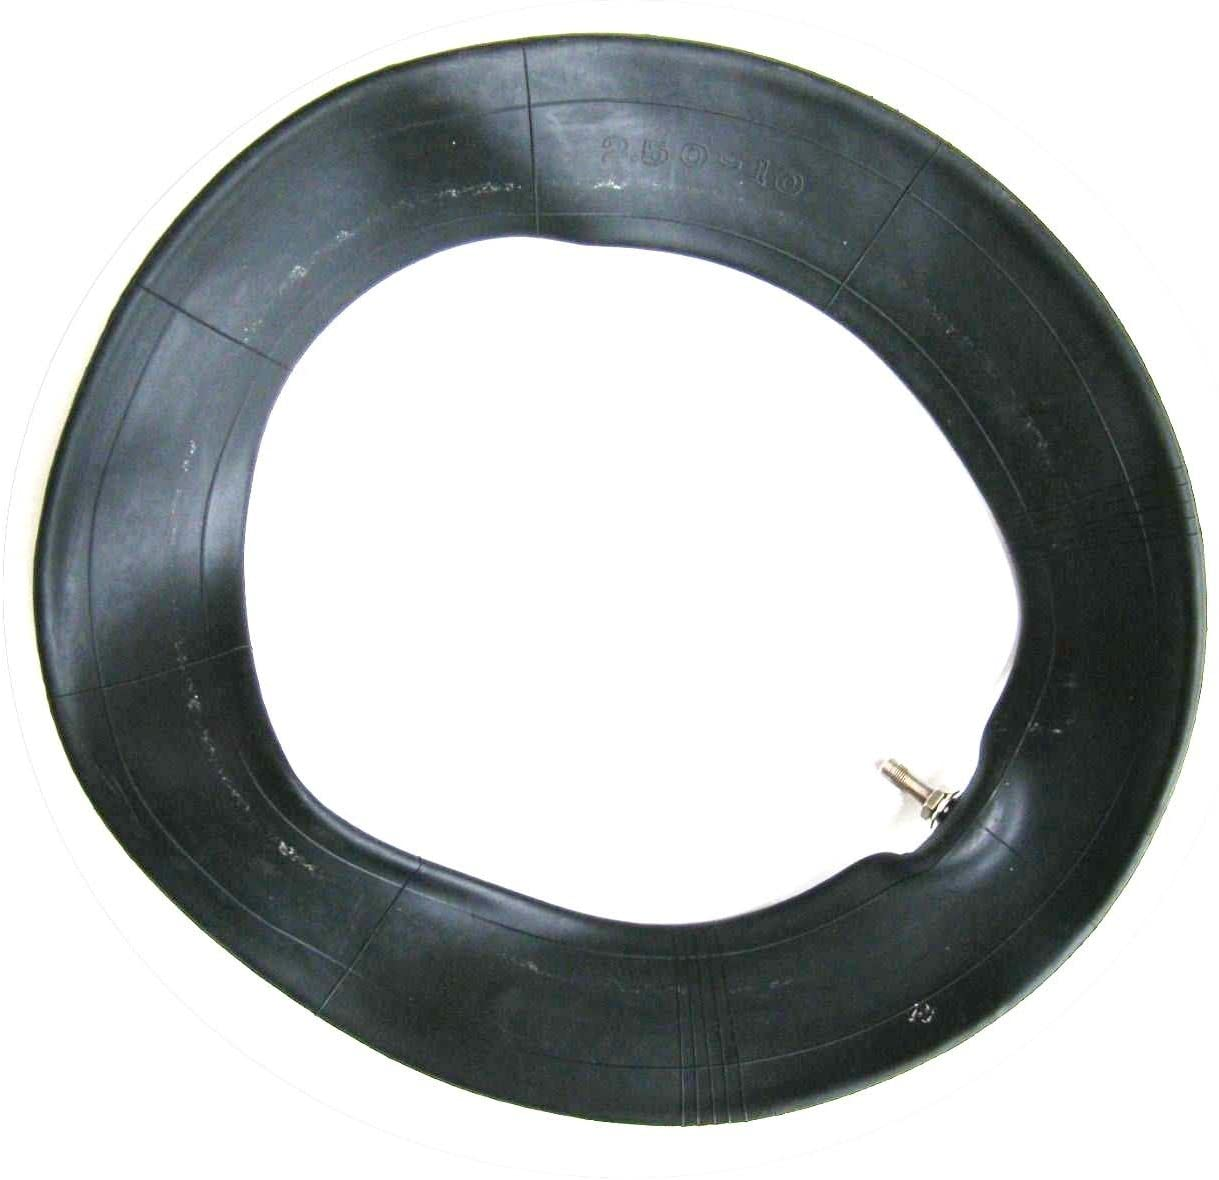 DELUXEMOTO (TM) 2.5 X 10 2.5-10 TIRE INNER TUBE FOR GAS ELECTRIC SCOOTER DIRT PIT POCKET BIKE